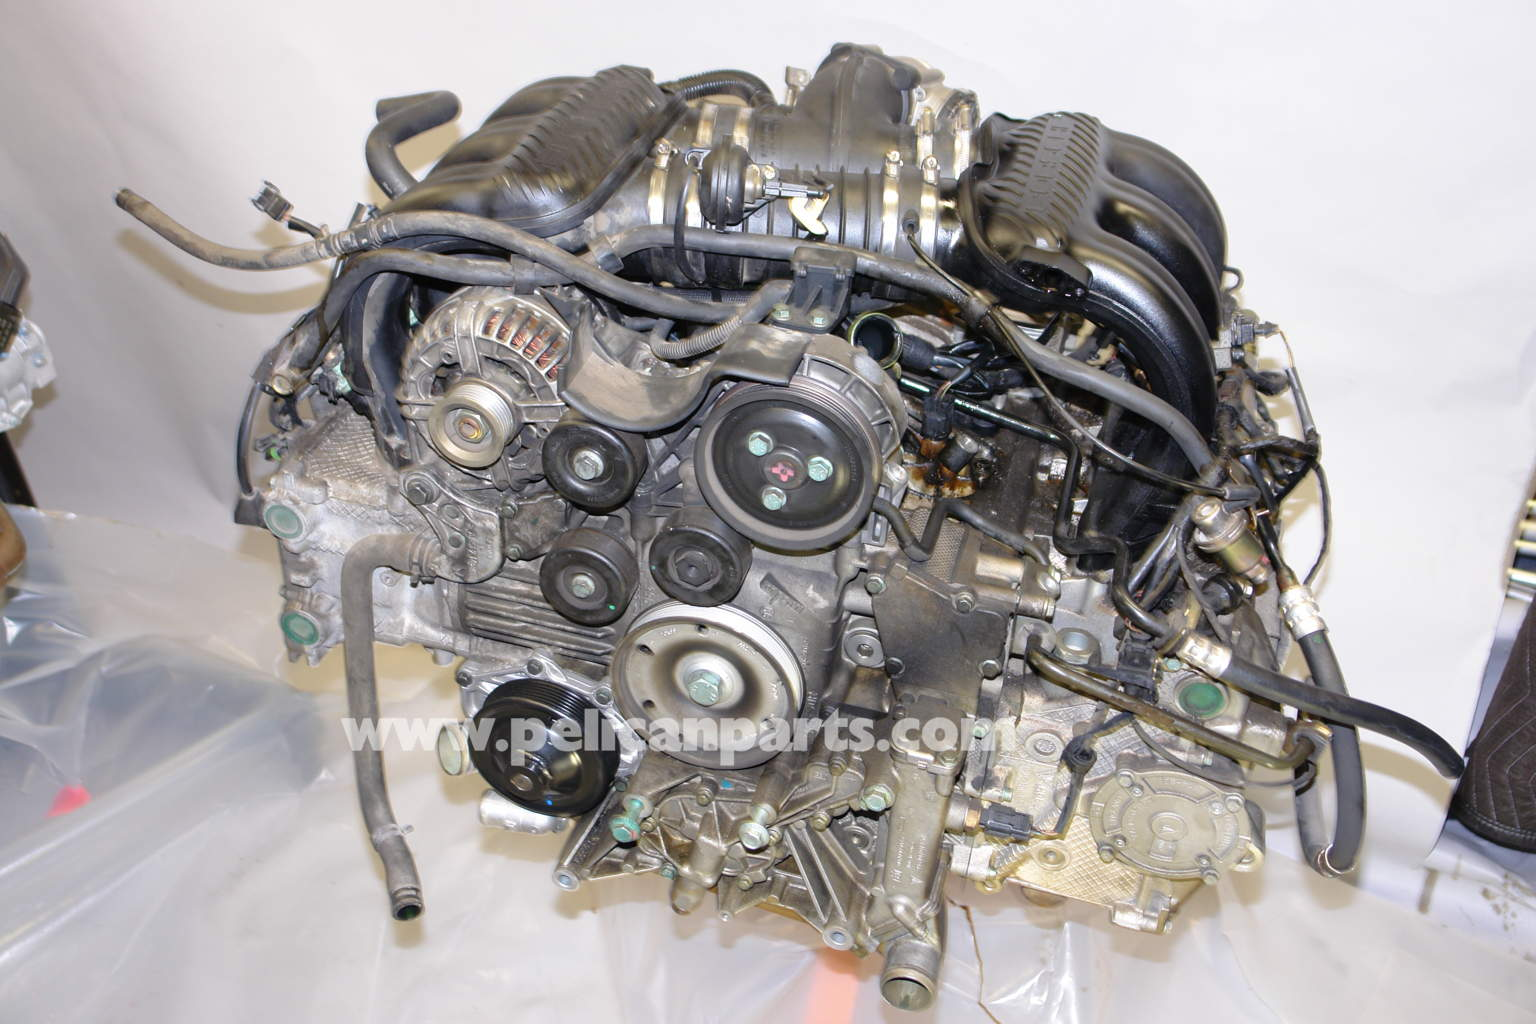 pelican technical article porsche boxster 996 engine swap large image